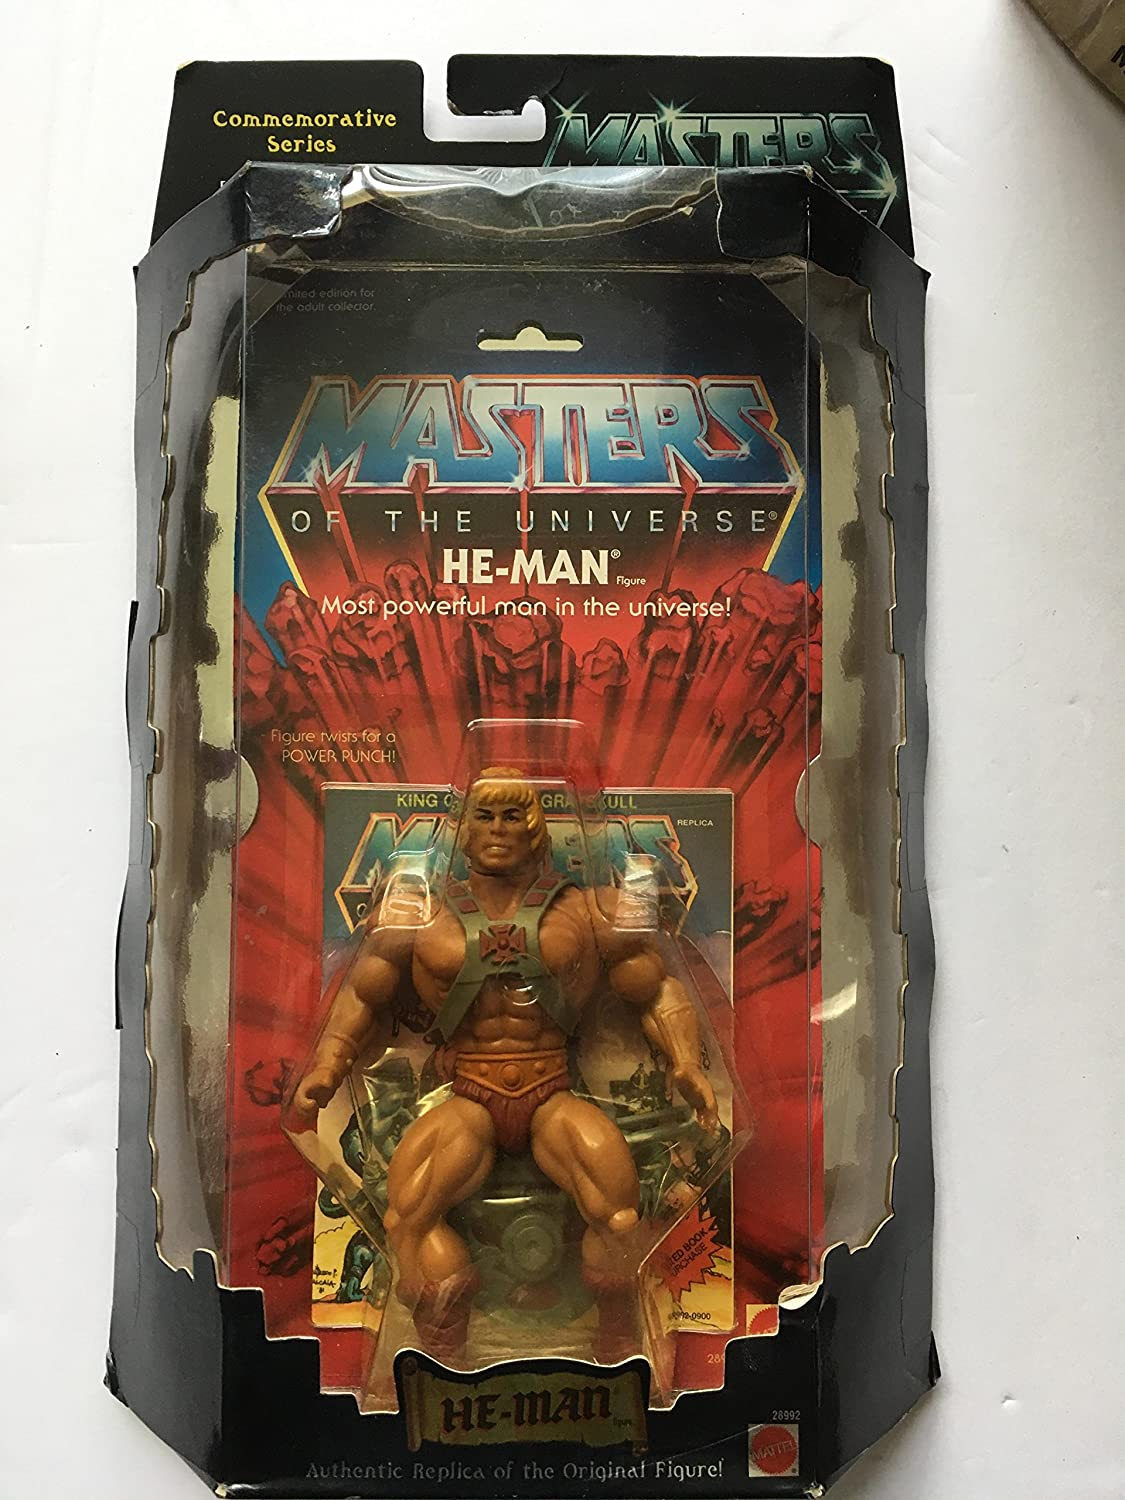 Master of the Universe He-Man Commemorative Series